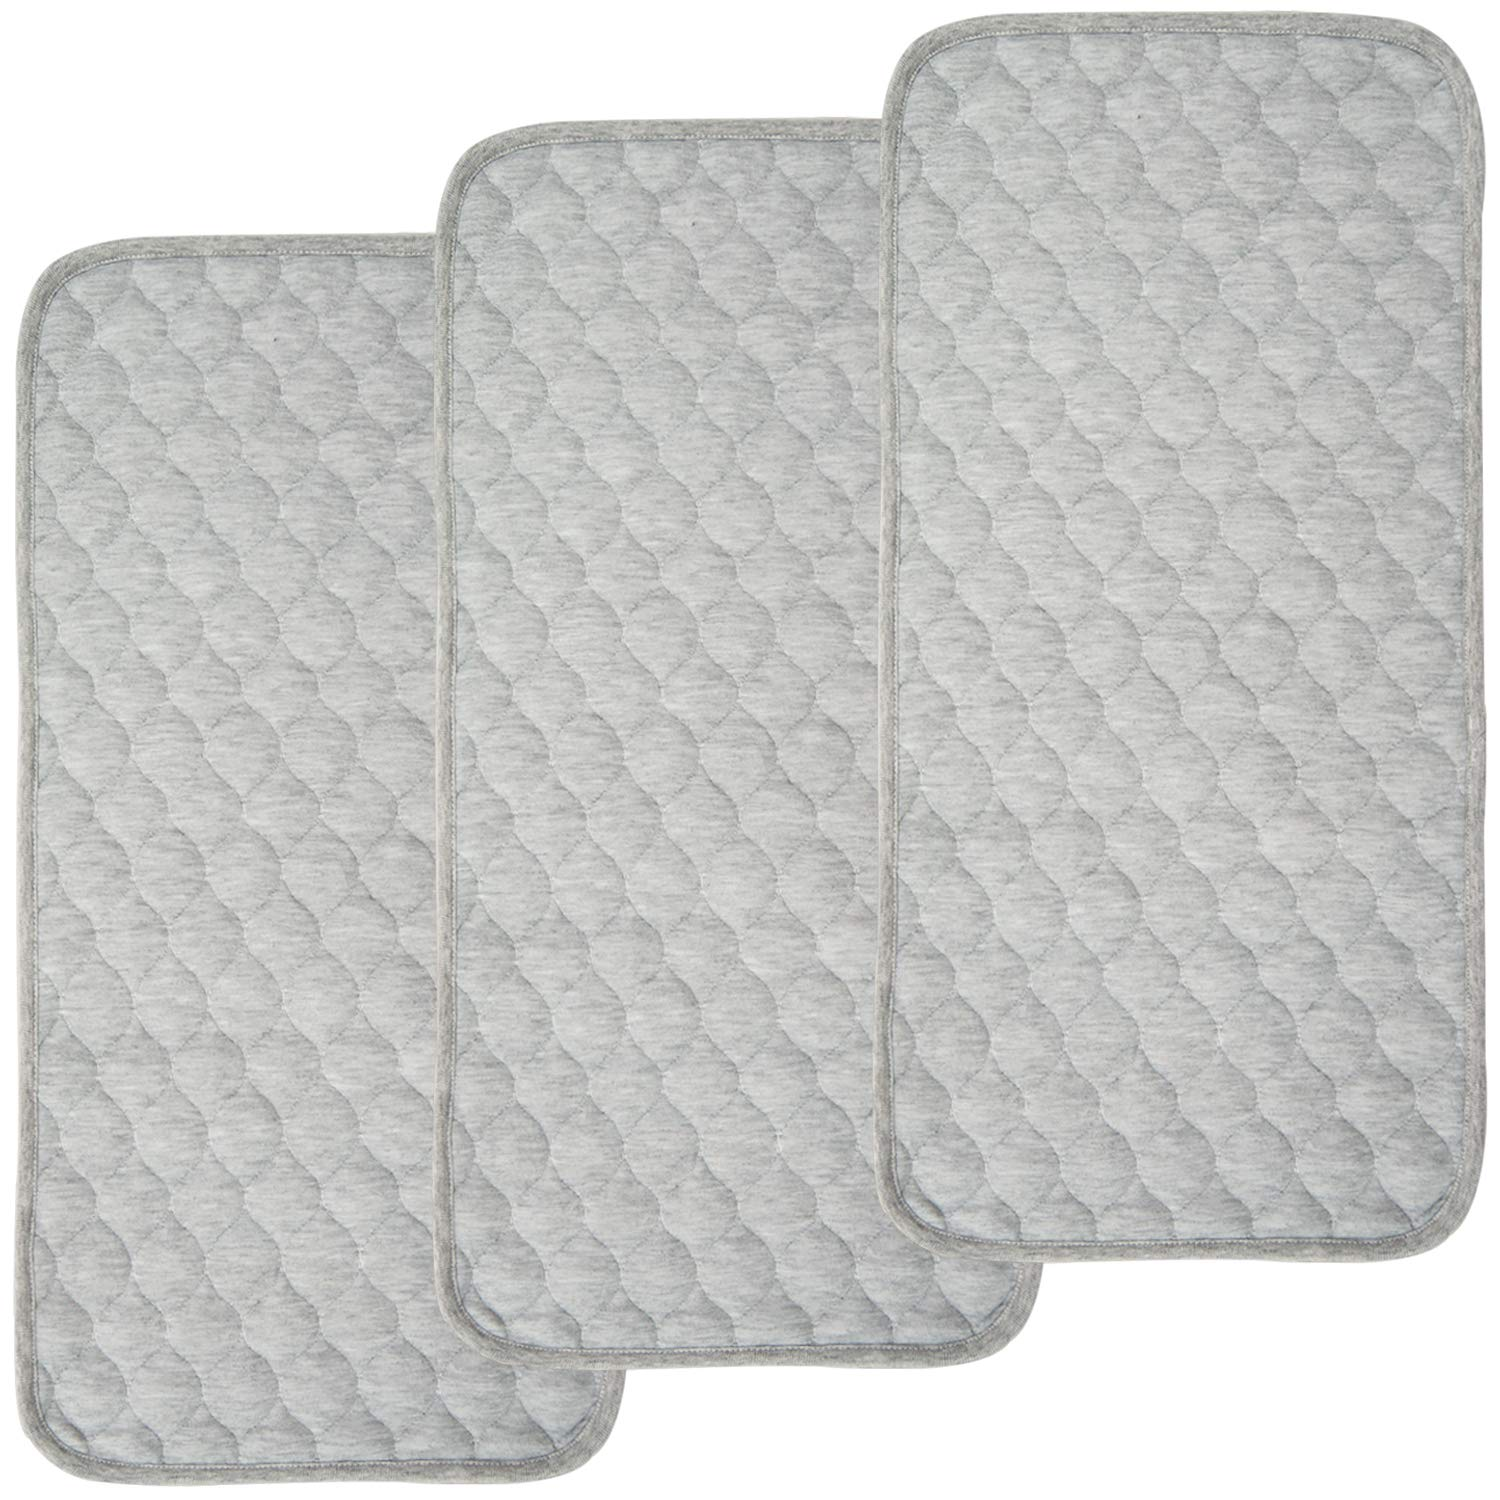 BlueSnail Bamboo Rayon Quilted Thicker Longer Waterproof Changing Pad Liners for Babies 3 Count (Heather Gray) by BlueSnail